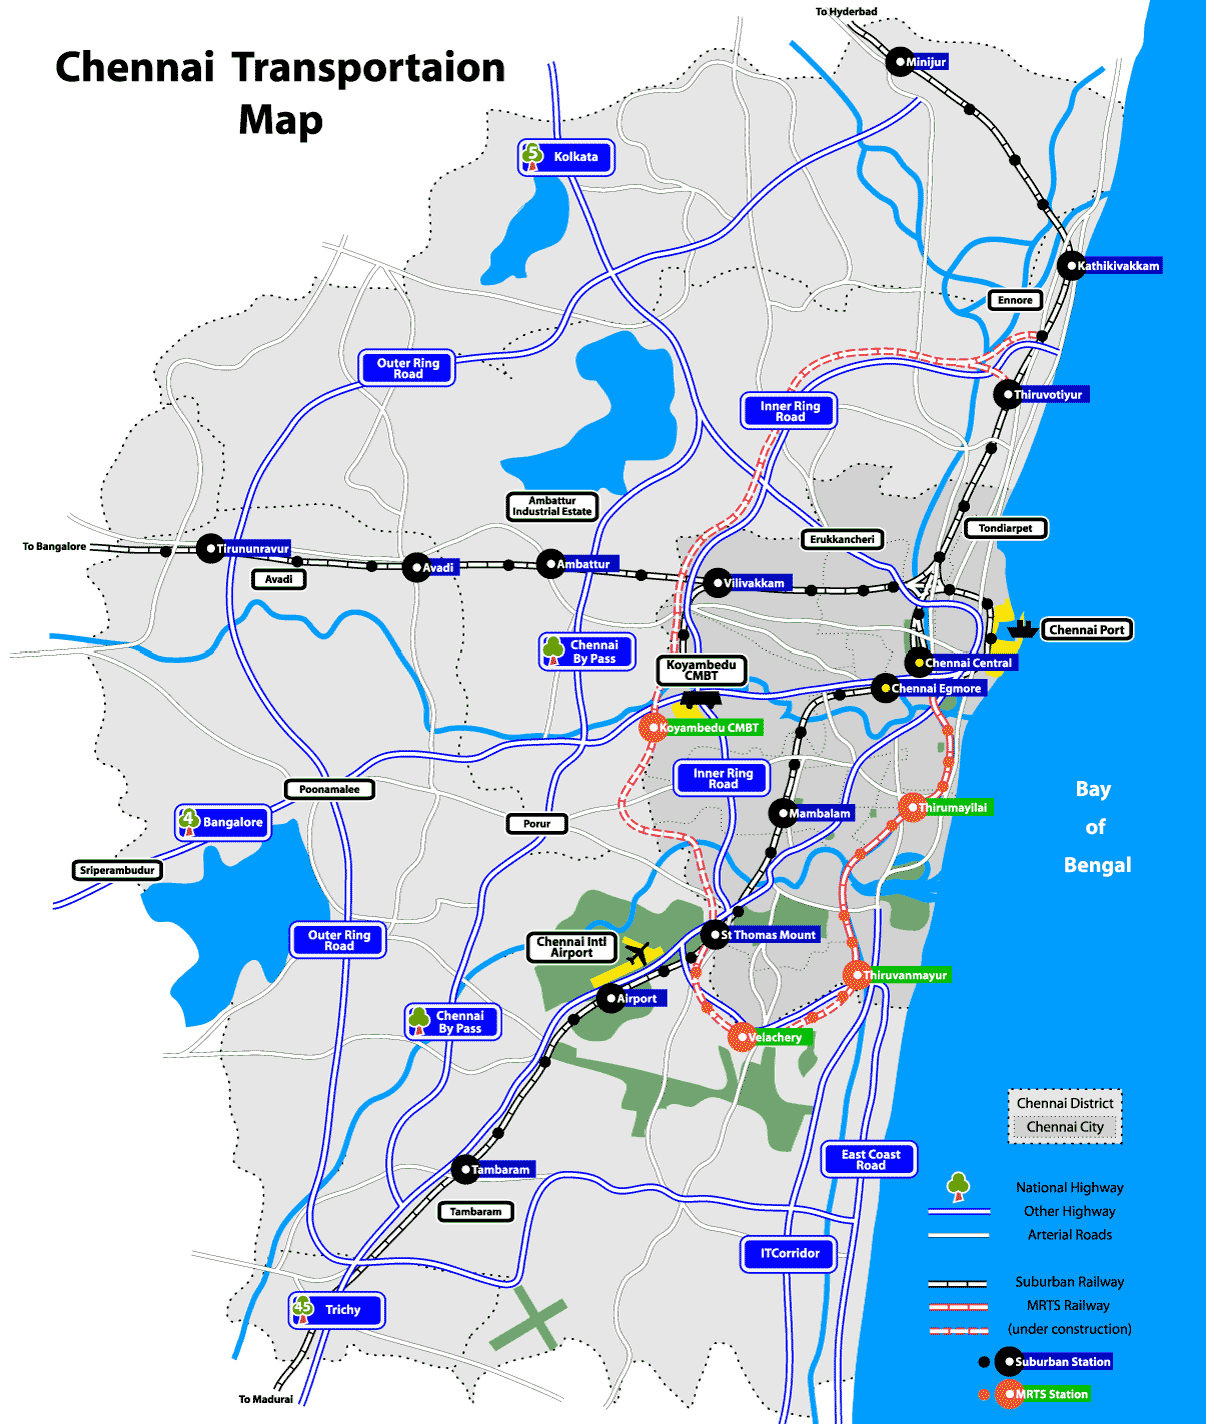 Chennai Transport Map - mapsof.